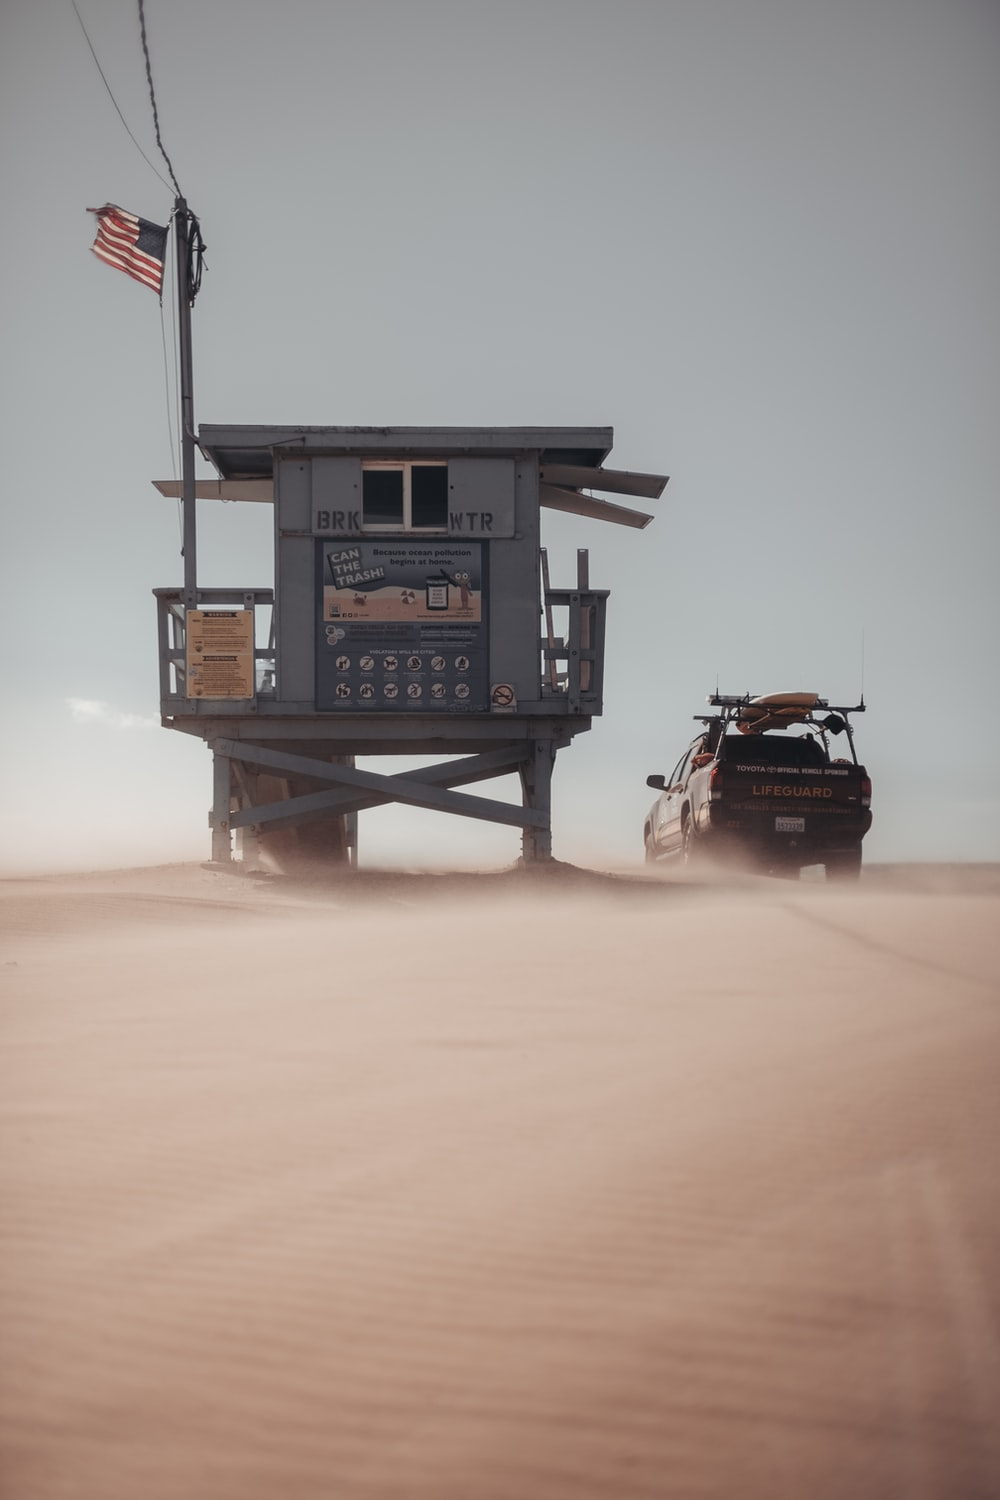 black and brown car on gray metal tower